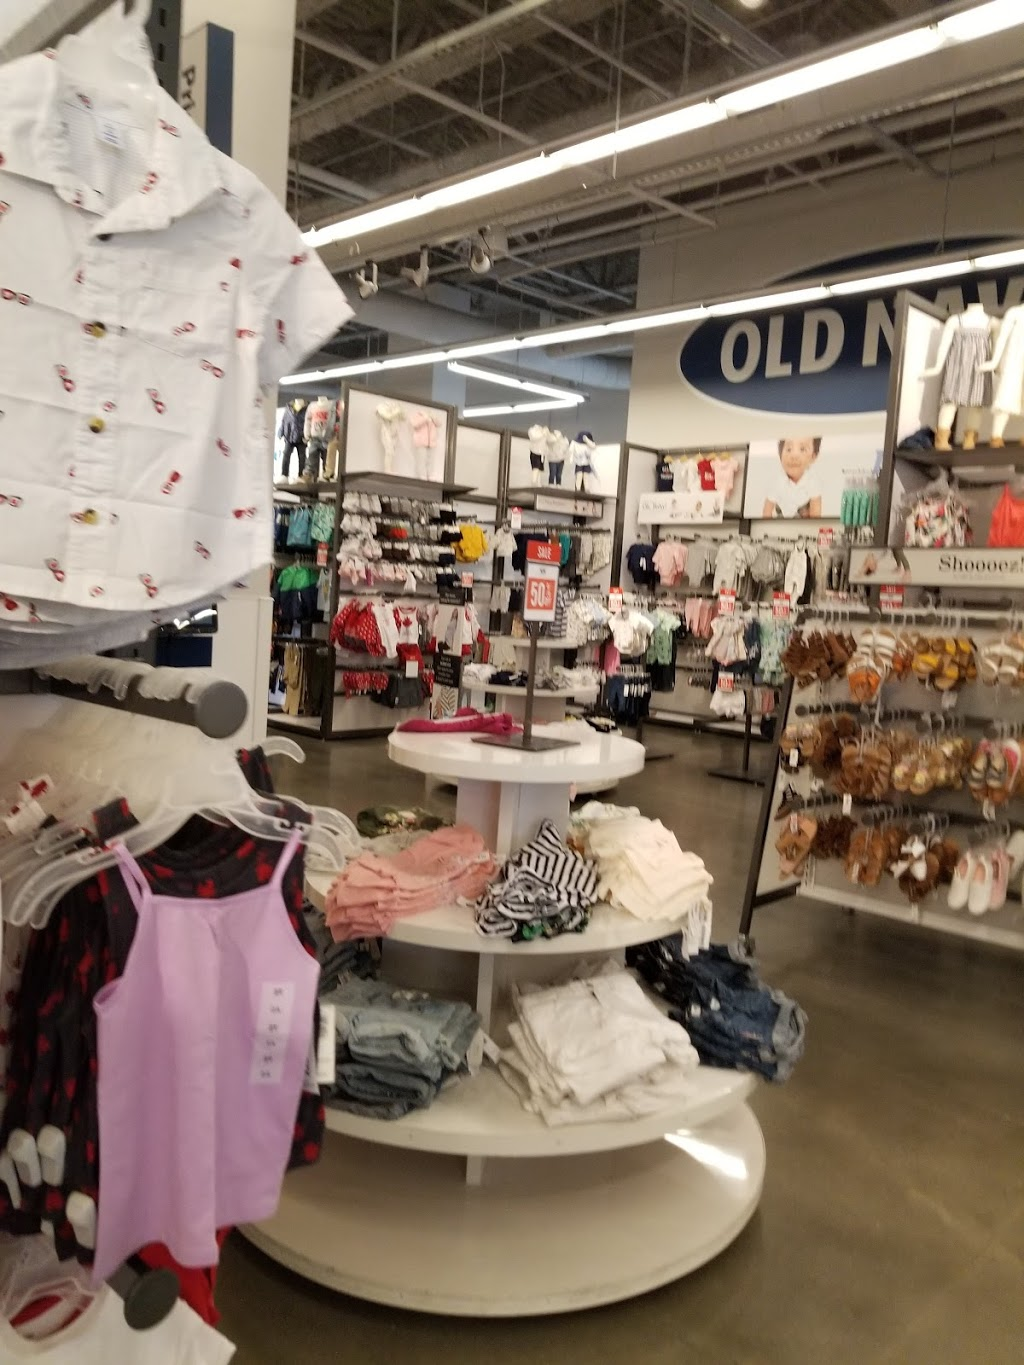 Old Navy | clothing store | 3122 Mount Lehman Rd, Abbotsford, BC V4X 2M9, Canada | 6045042437 OR +1 604-504-2437